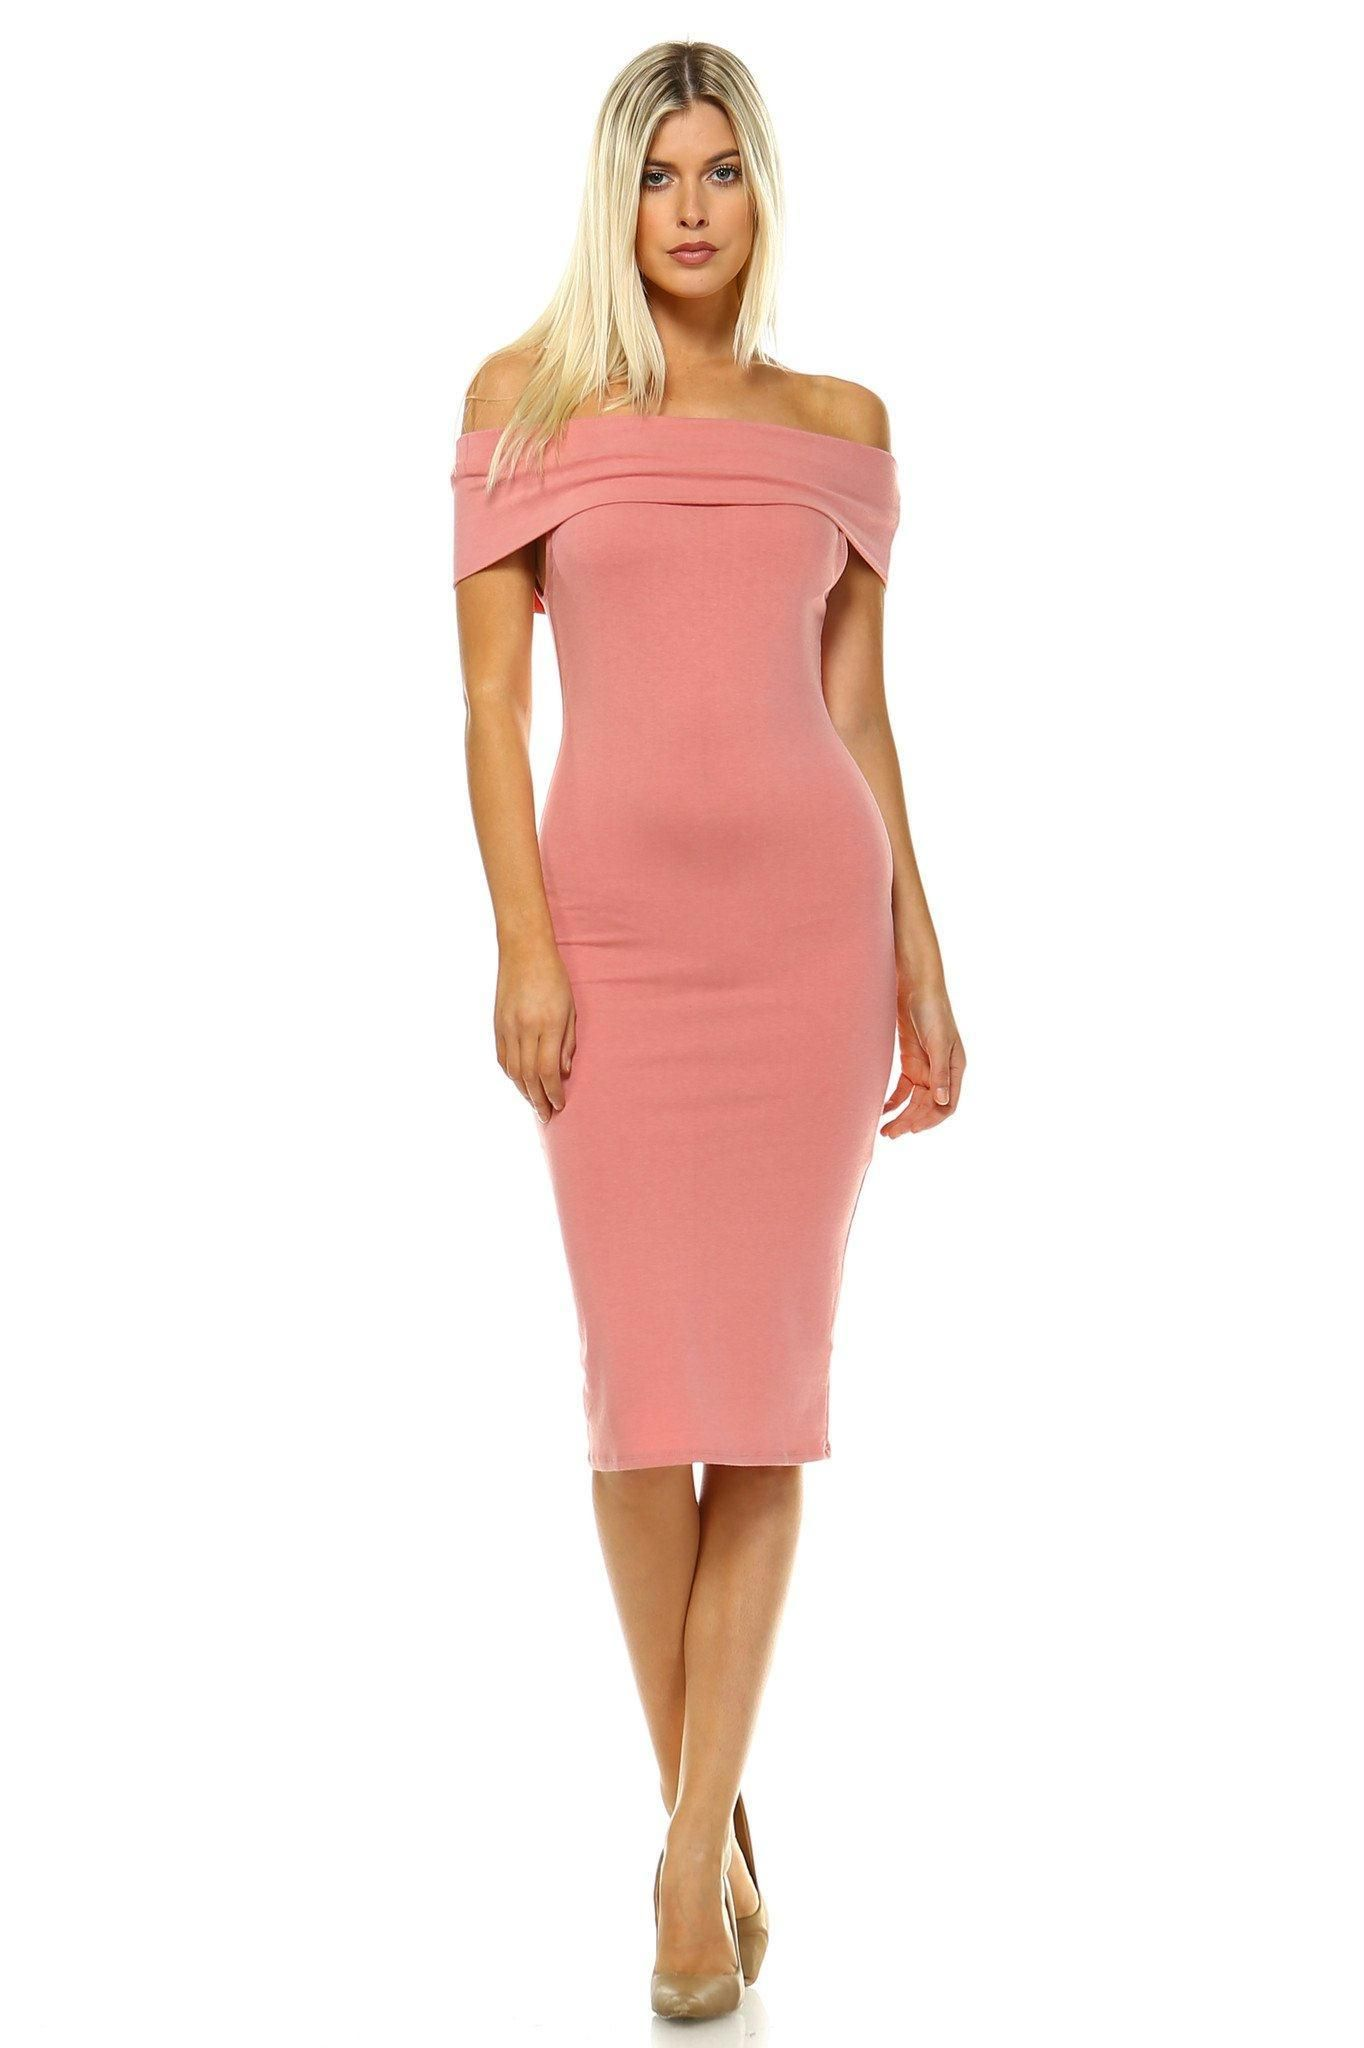 e35bfd9cebfe Women s Off Shoulder Bodycon Dress Department  Women s Apparel Category   Dresses Item  Bodycon Dress Material  60% Cotton 35% Rayon 5% Spandex  Style  Off ...